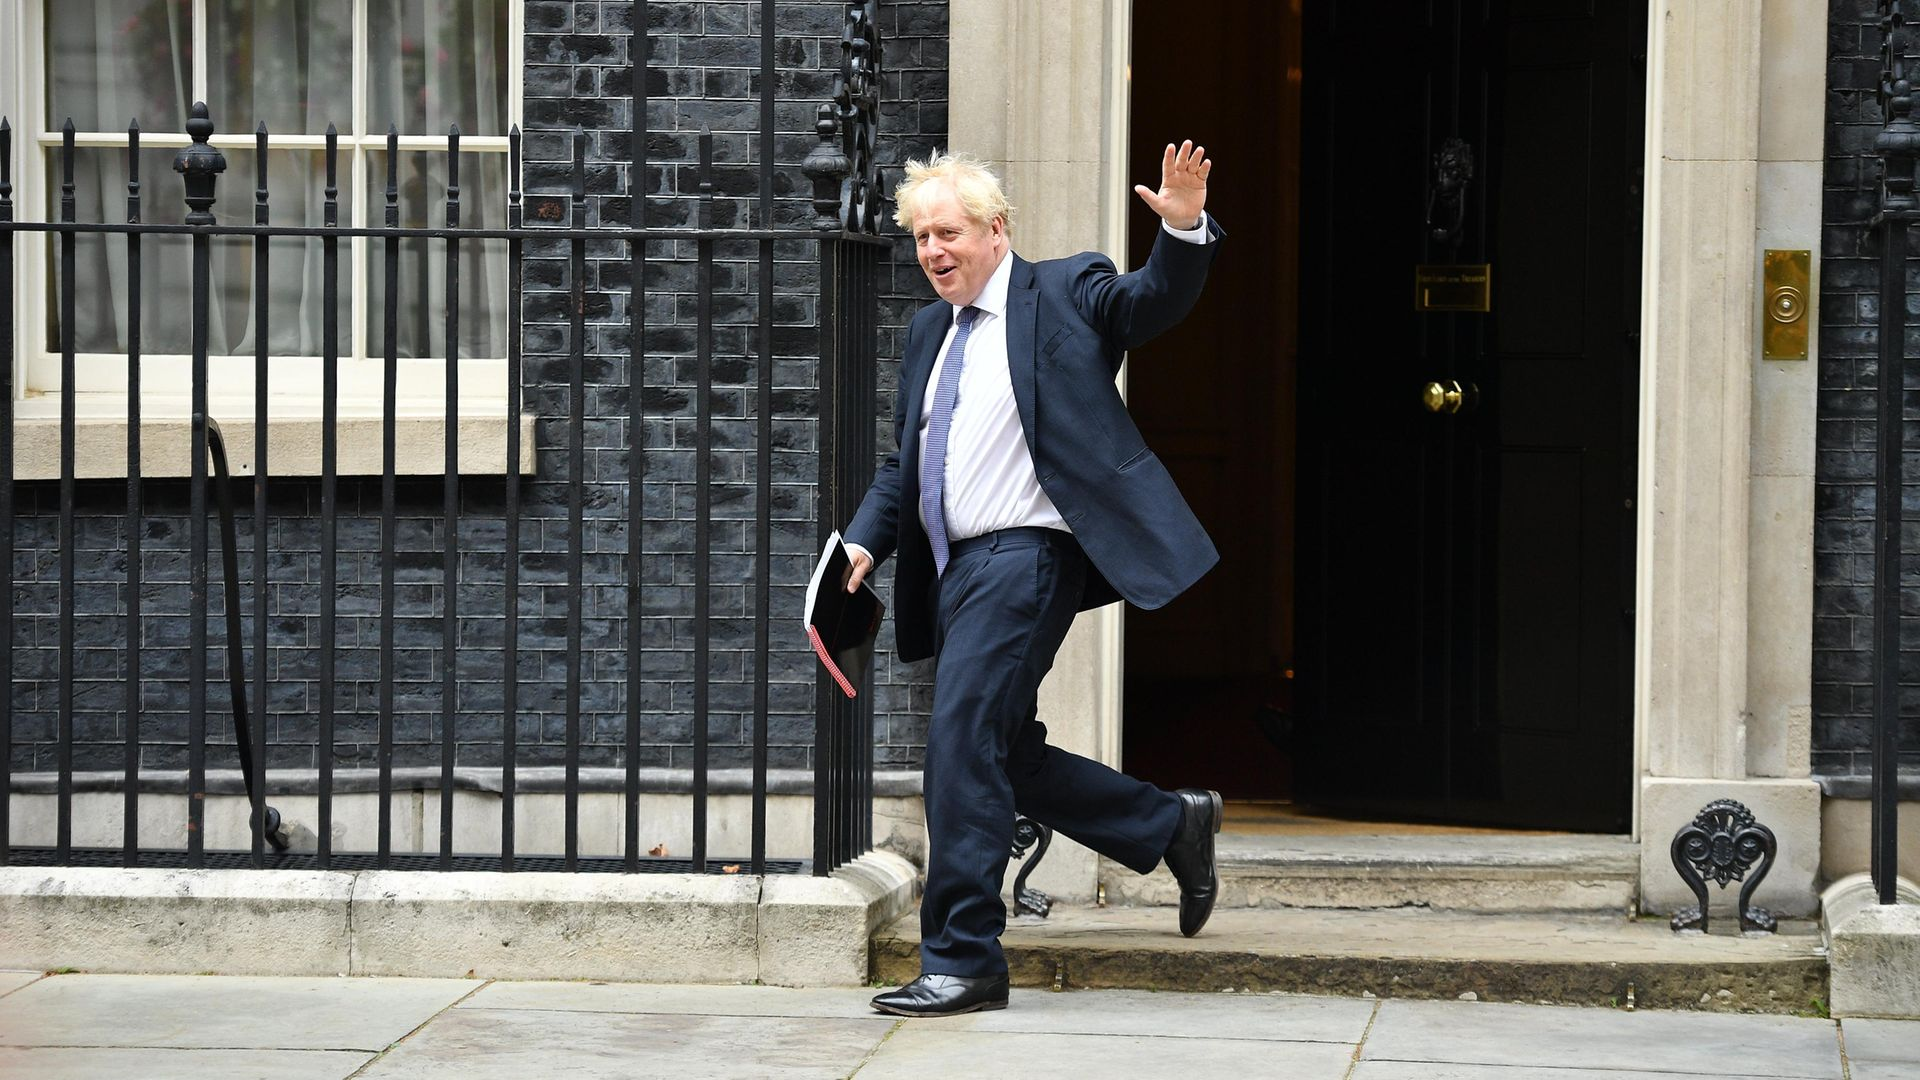 Boris Johnson leaves Downing Street - Credit: Getty Images